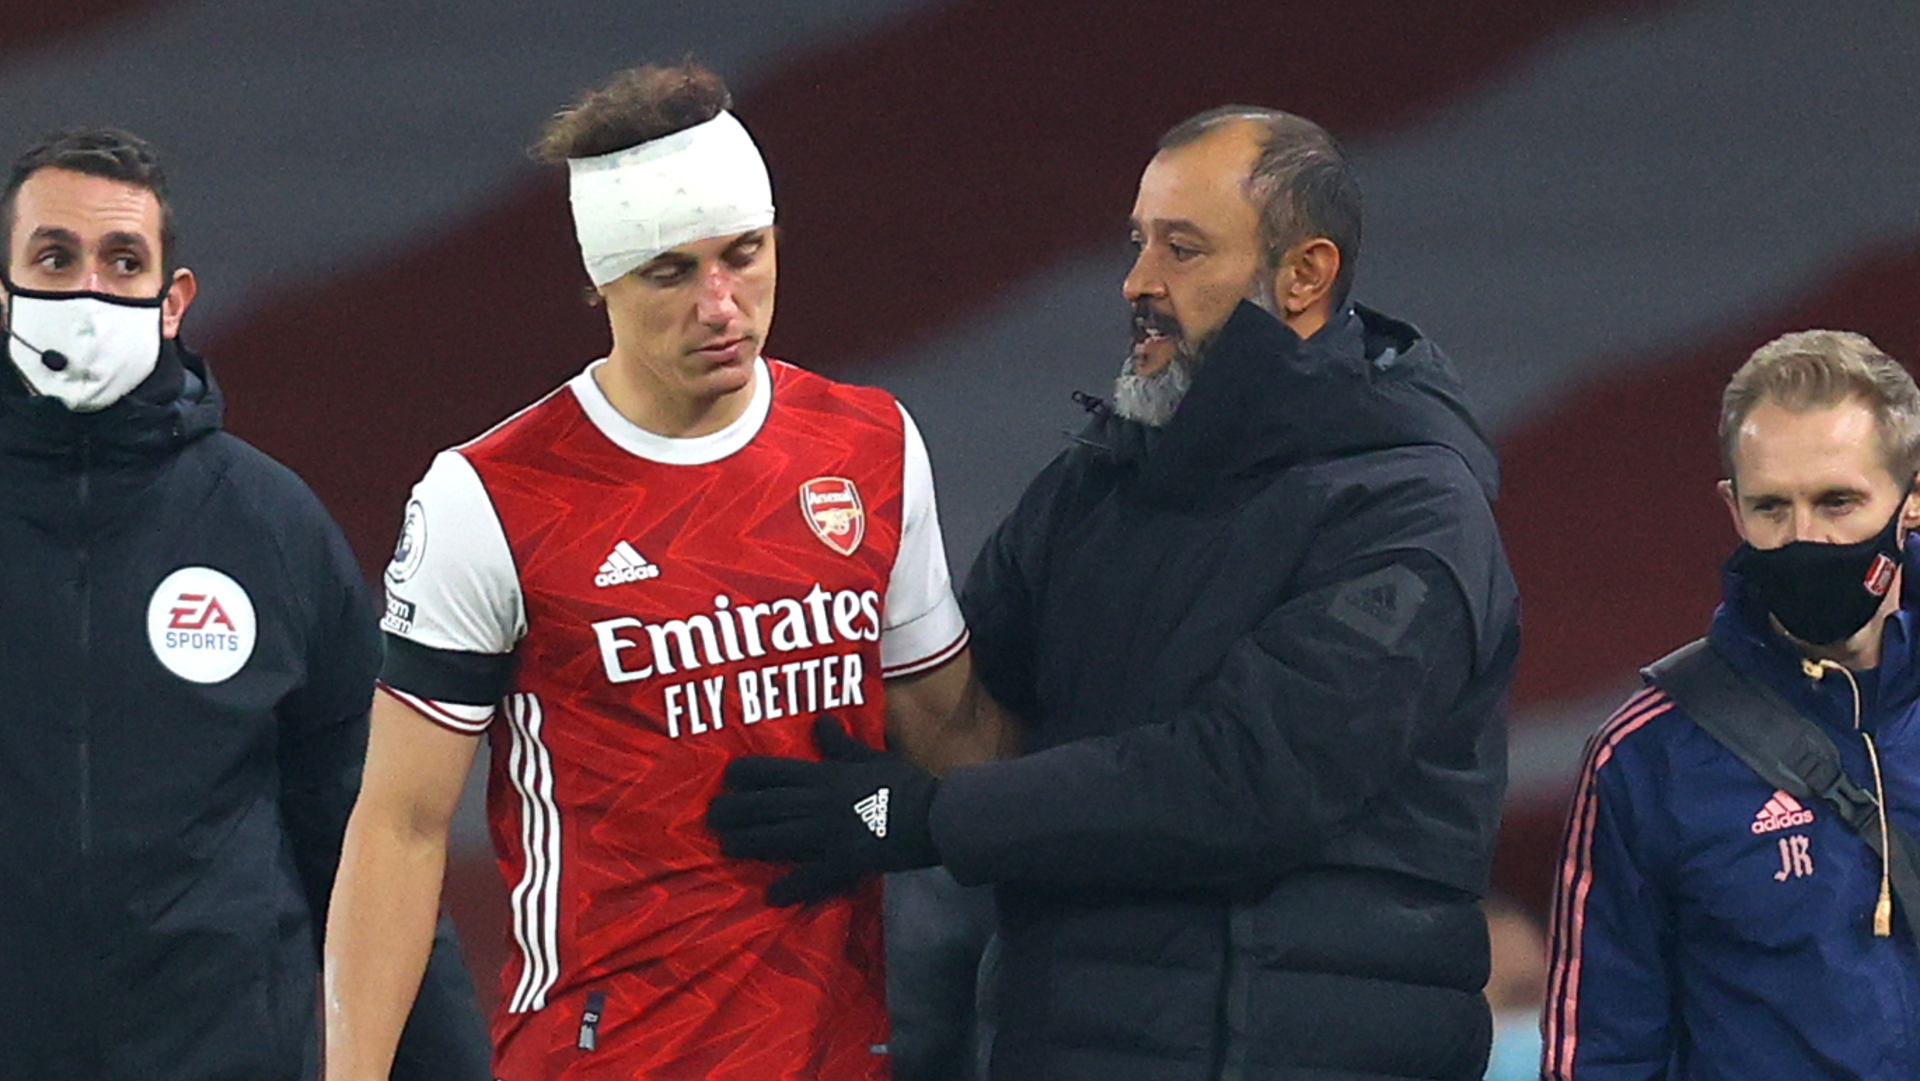 Nuno calls for concussion substitutes in Premier League after Wolves star Jimenez suffers fractured skull